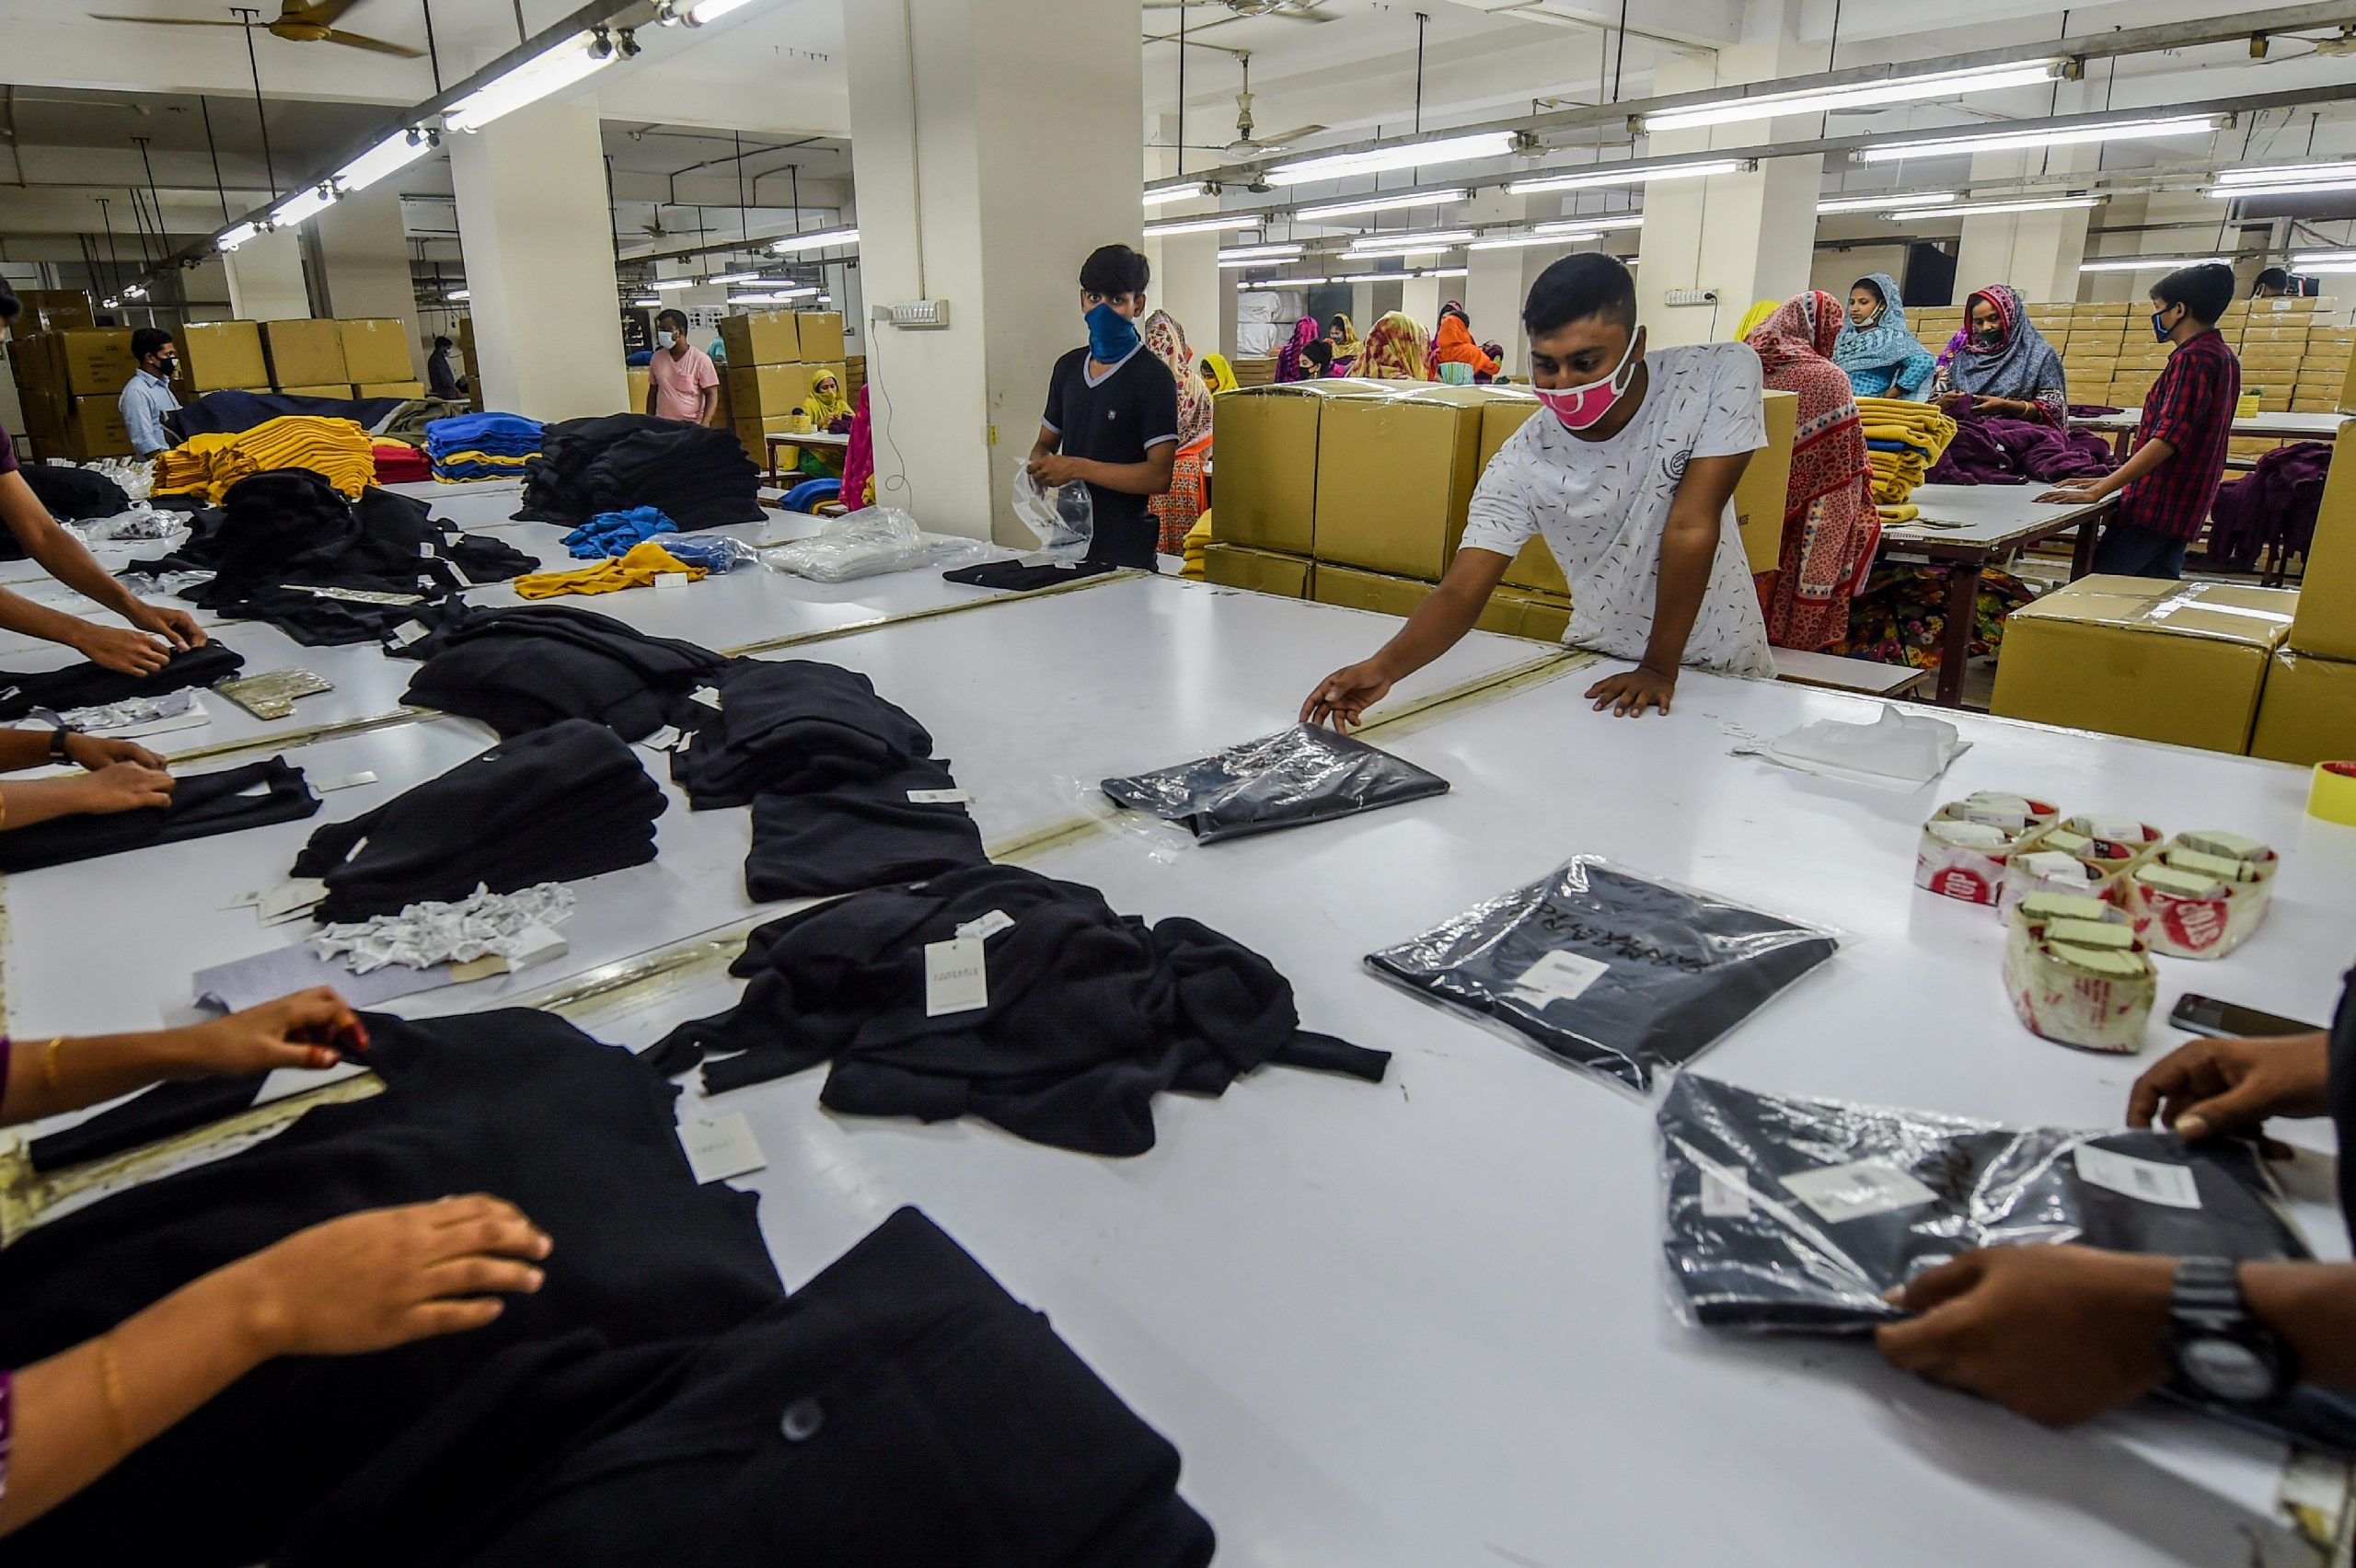 STRUGGLING: Bangladeshi workers make garments for leading Western fashion retailers (Photo credit: MUNIR UZ ZAMAN / AFP)